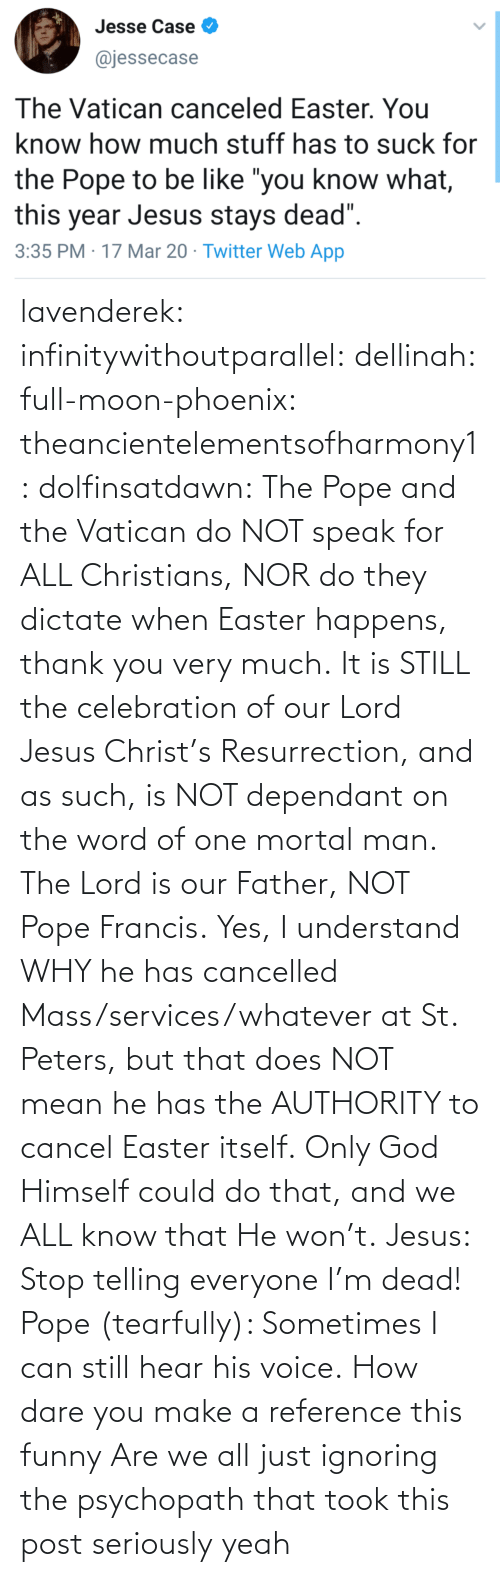 jesus christ: lavenderek: infinitywithoutparallel:  dellinah:  full-moon-phoenix:   theancientelementsofharmony1:  dolfinsatdawn:    The Pope and the Vatican do NOT speak for ALL Christians, NOR do they dictate when Easter happens, thank you very much. It is STILL the celebration of our Lord Jesus Christ's Resurrection, and as such, is NOT dependant on the word of one mortal man. The Lord is our Father, NOT Pope Francis. Yes, I understand WHY he has cancelled Mass/services/whatever at St. Peters, but that does NOT mean he has the AUTHORITY to cancel Easter itself. Only God Himself could do that, and we ALL know that He won't.    Jesus: Stop telling everyone I'm dead! Pope (tearfully): Sometimes I can still hear his voice.    How dare you make a reference this funny    Are we all just ignoring the psychopath that took this post seriously     yeah